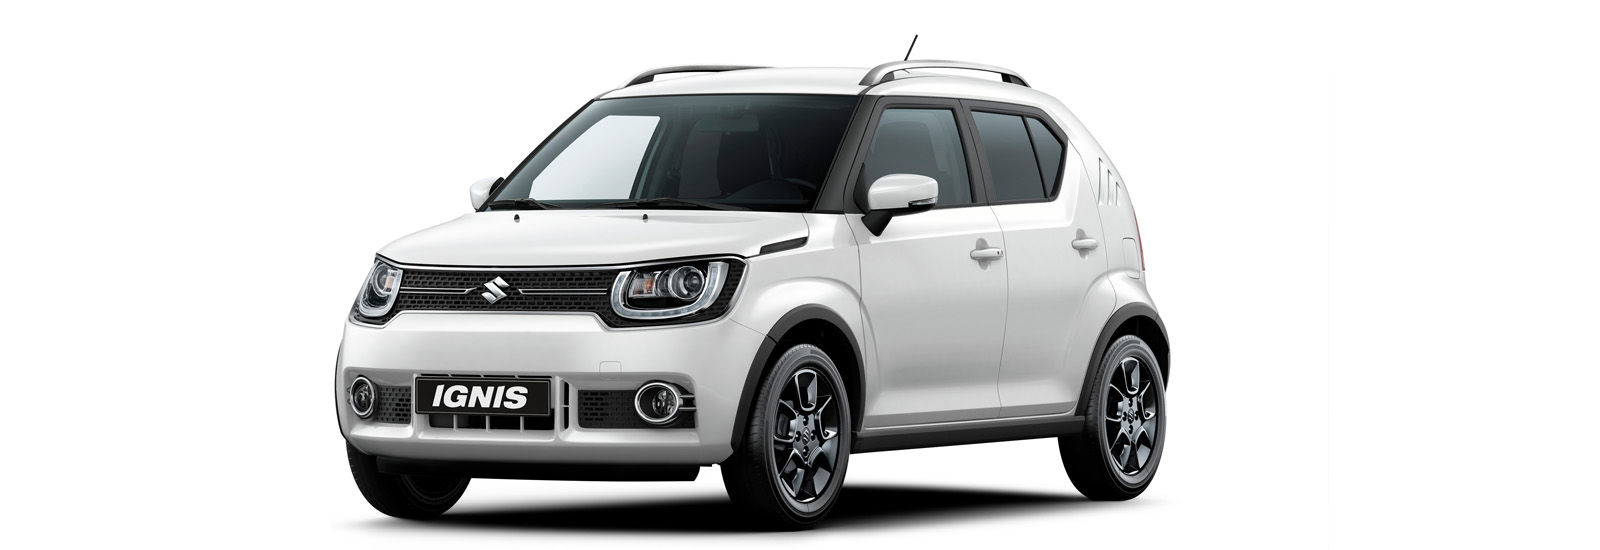 2018 suzuki ignis sport price specs release date carwow. Black Bedroom Furniture Sets. Home Design Ideas